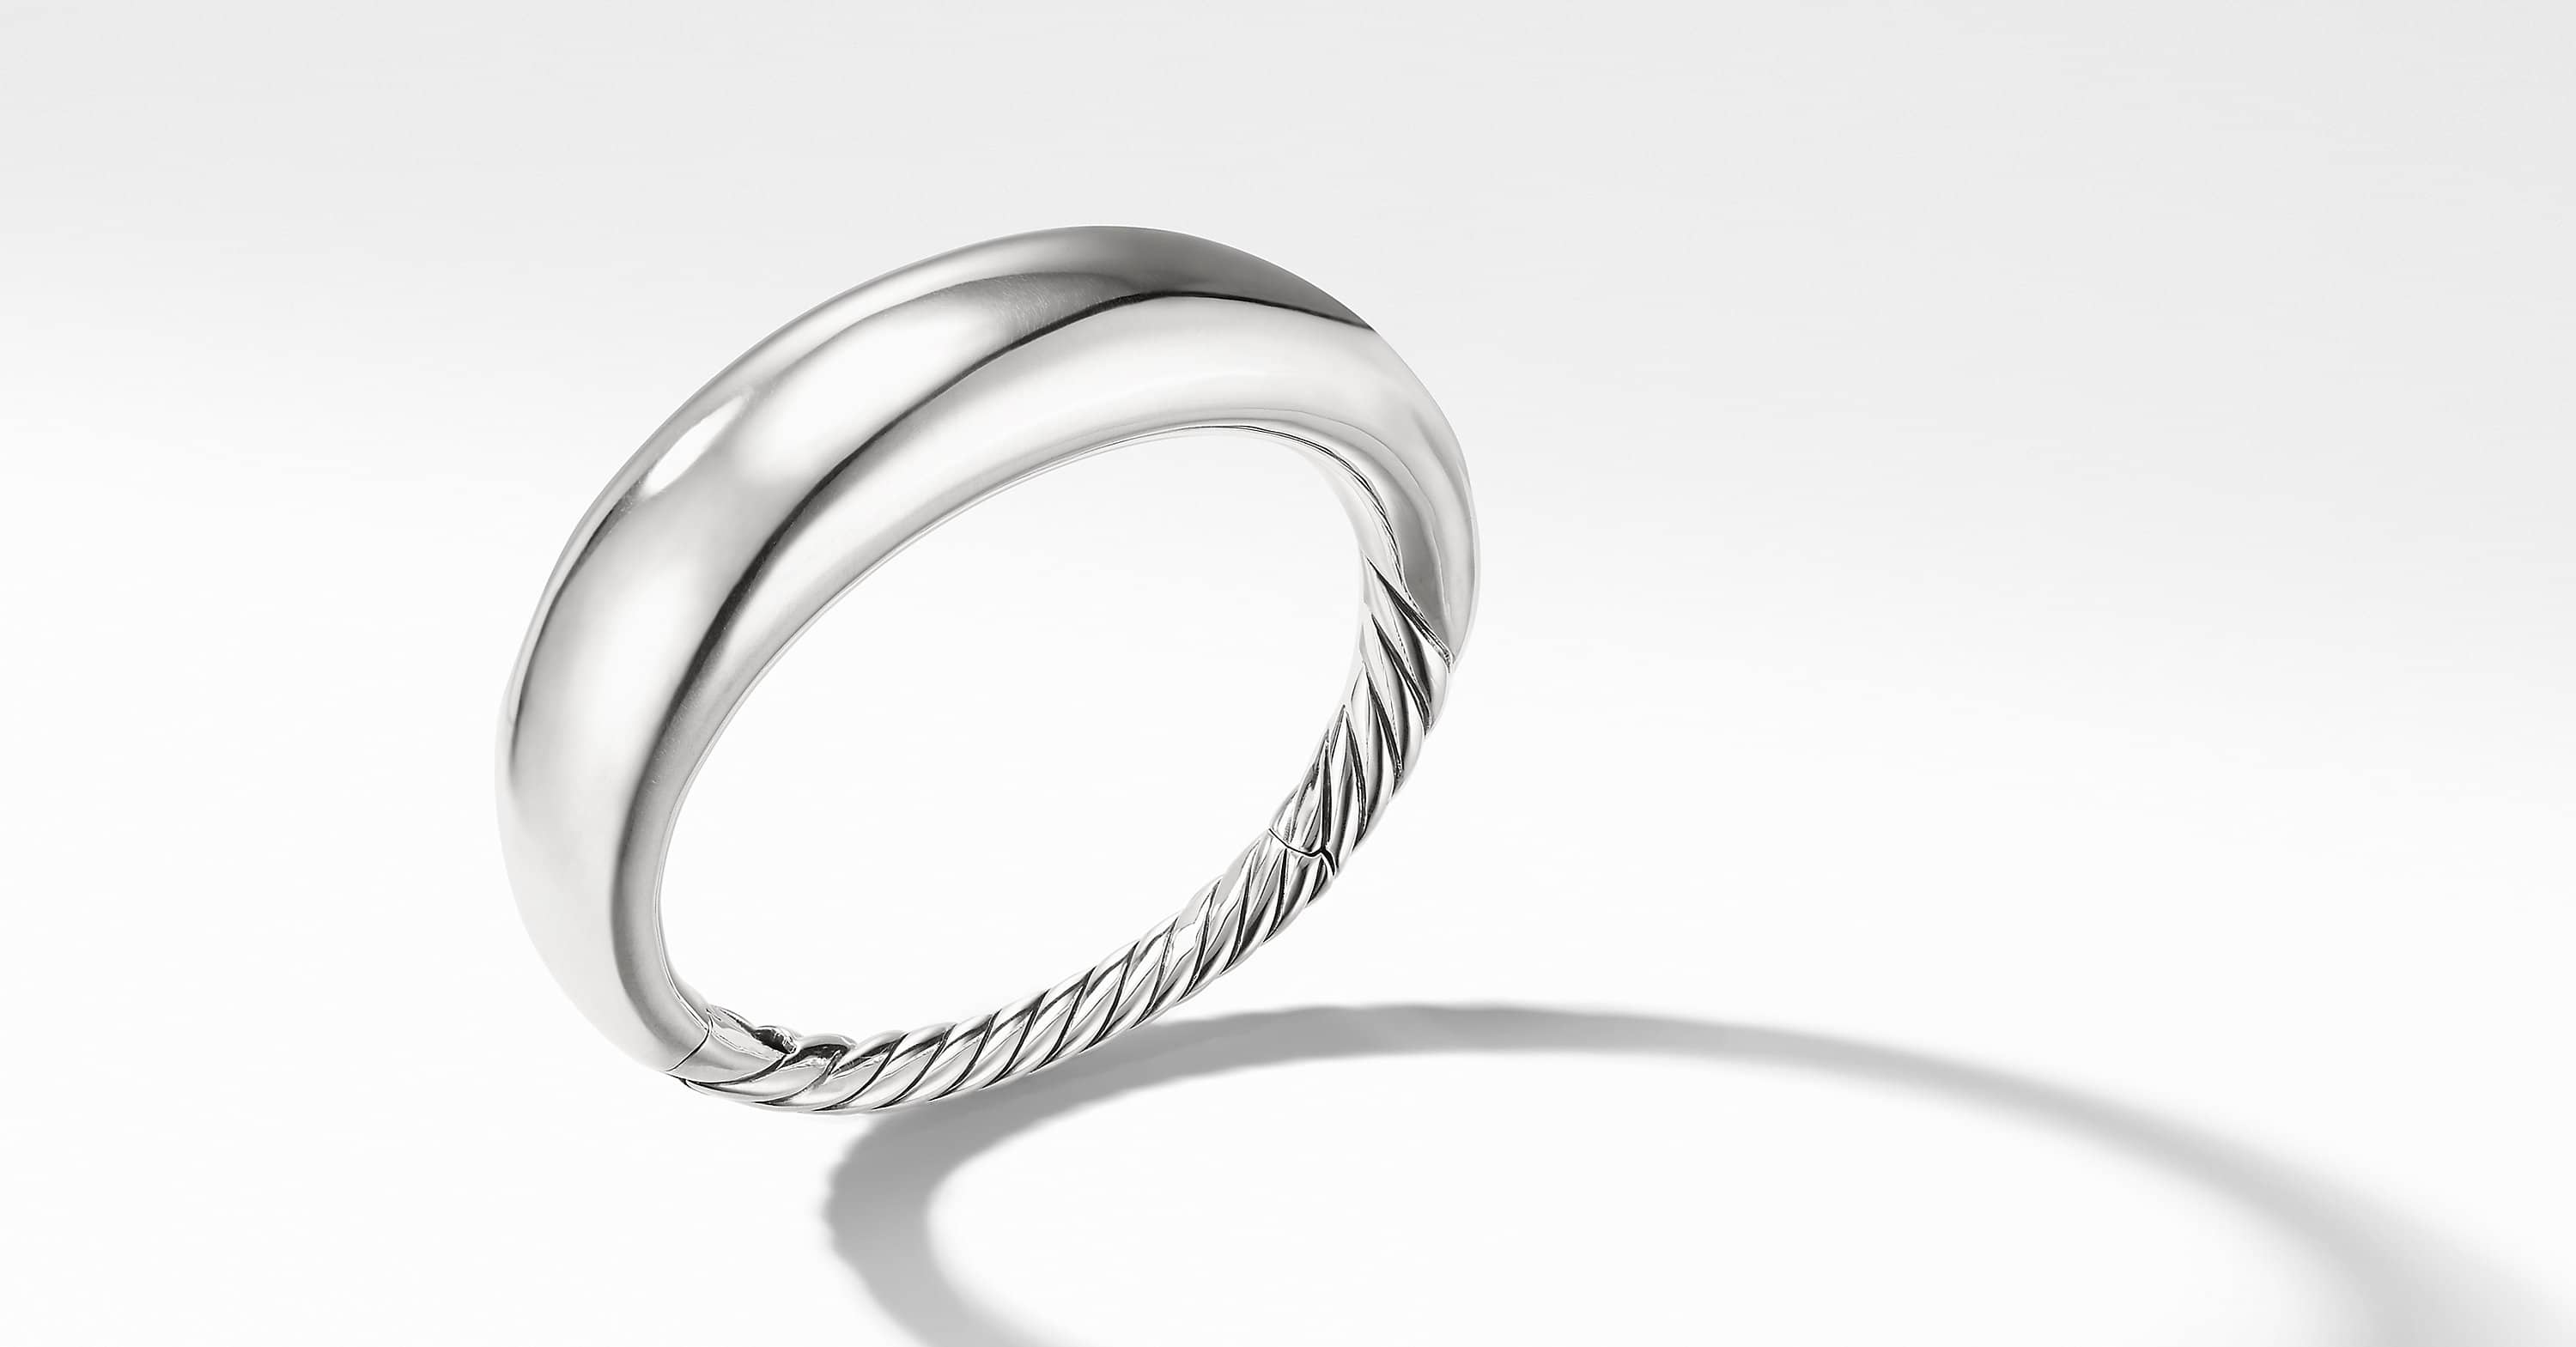 Pure Form Smooth Bracelet, 17mm